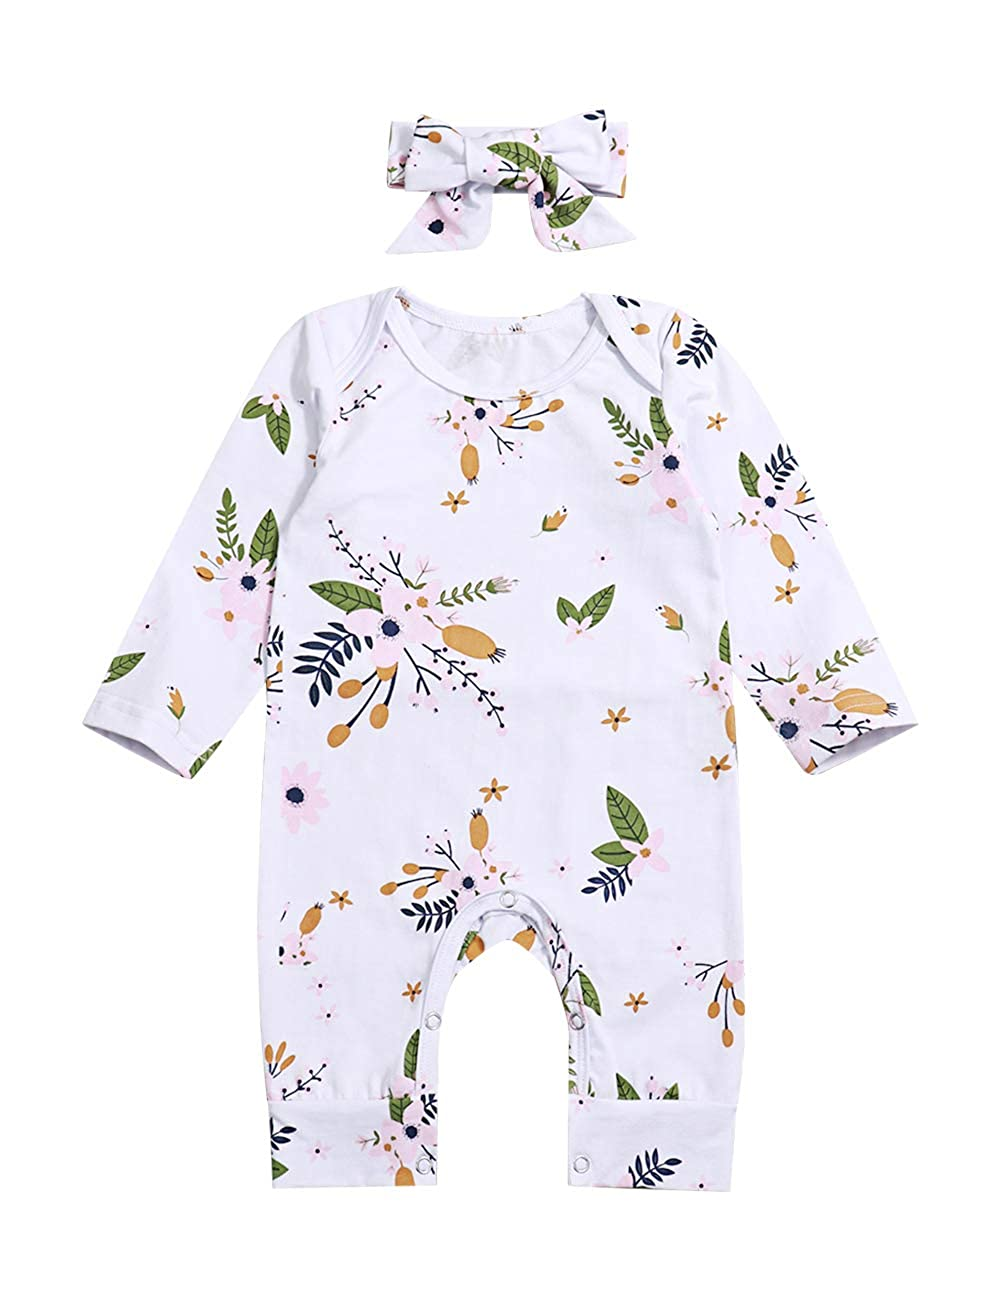 Newborn Infant Baby Girl Clothes Floral Printed Romper Long Sleeve Jumpsuit with Headband Clothing Set